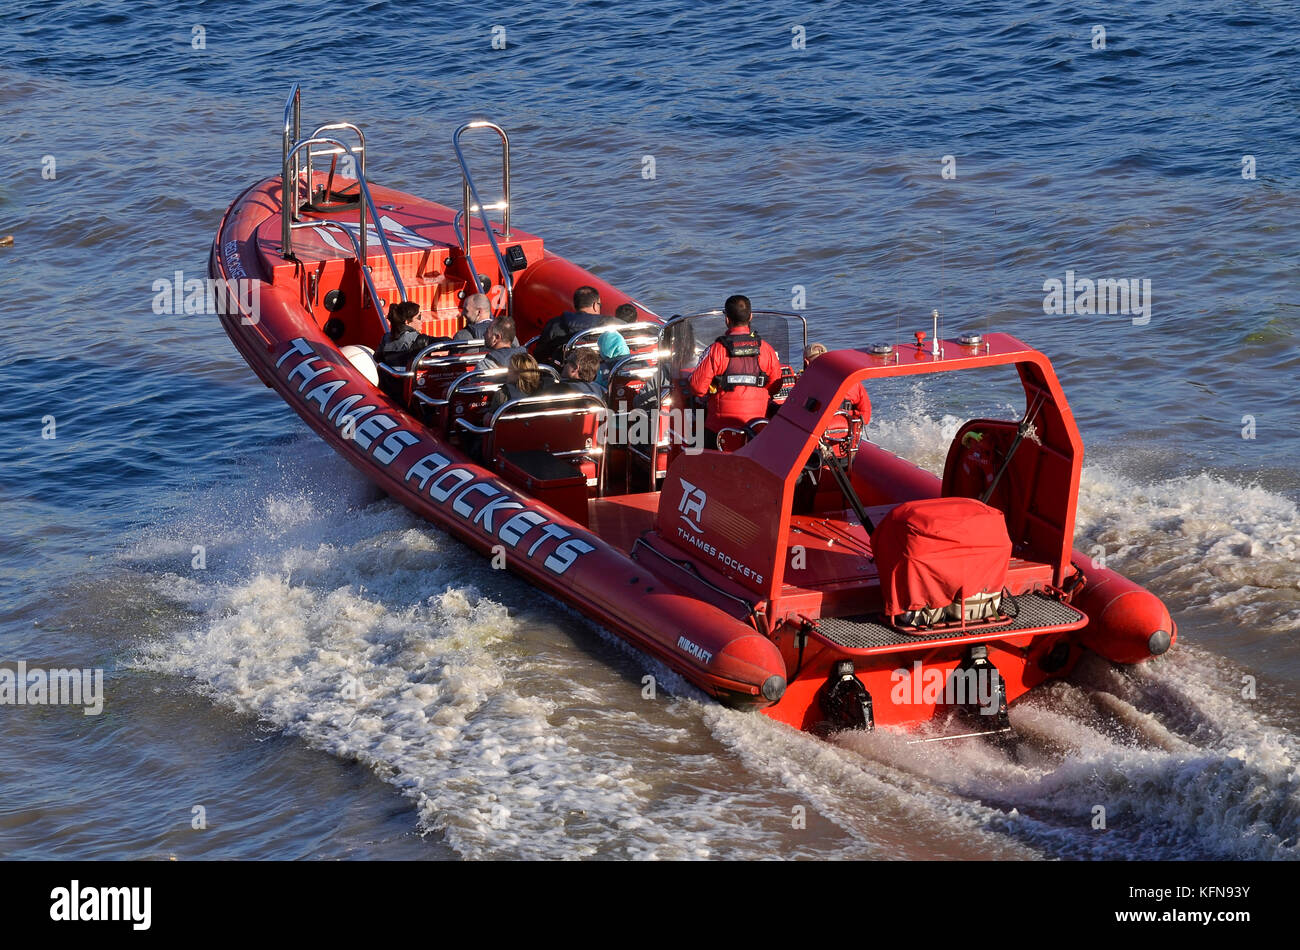 Thames Rockets speedboat tourist ride, River Thames, London, UK. - Stock Image